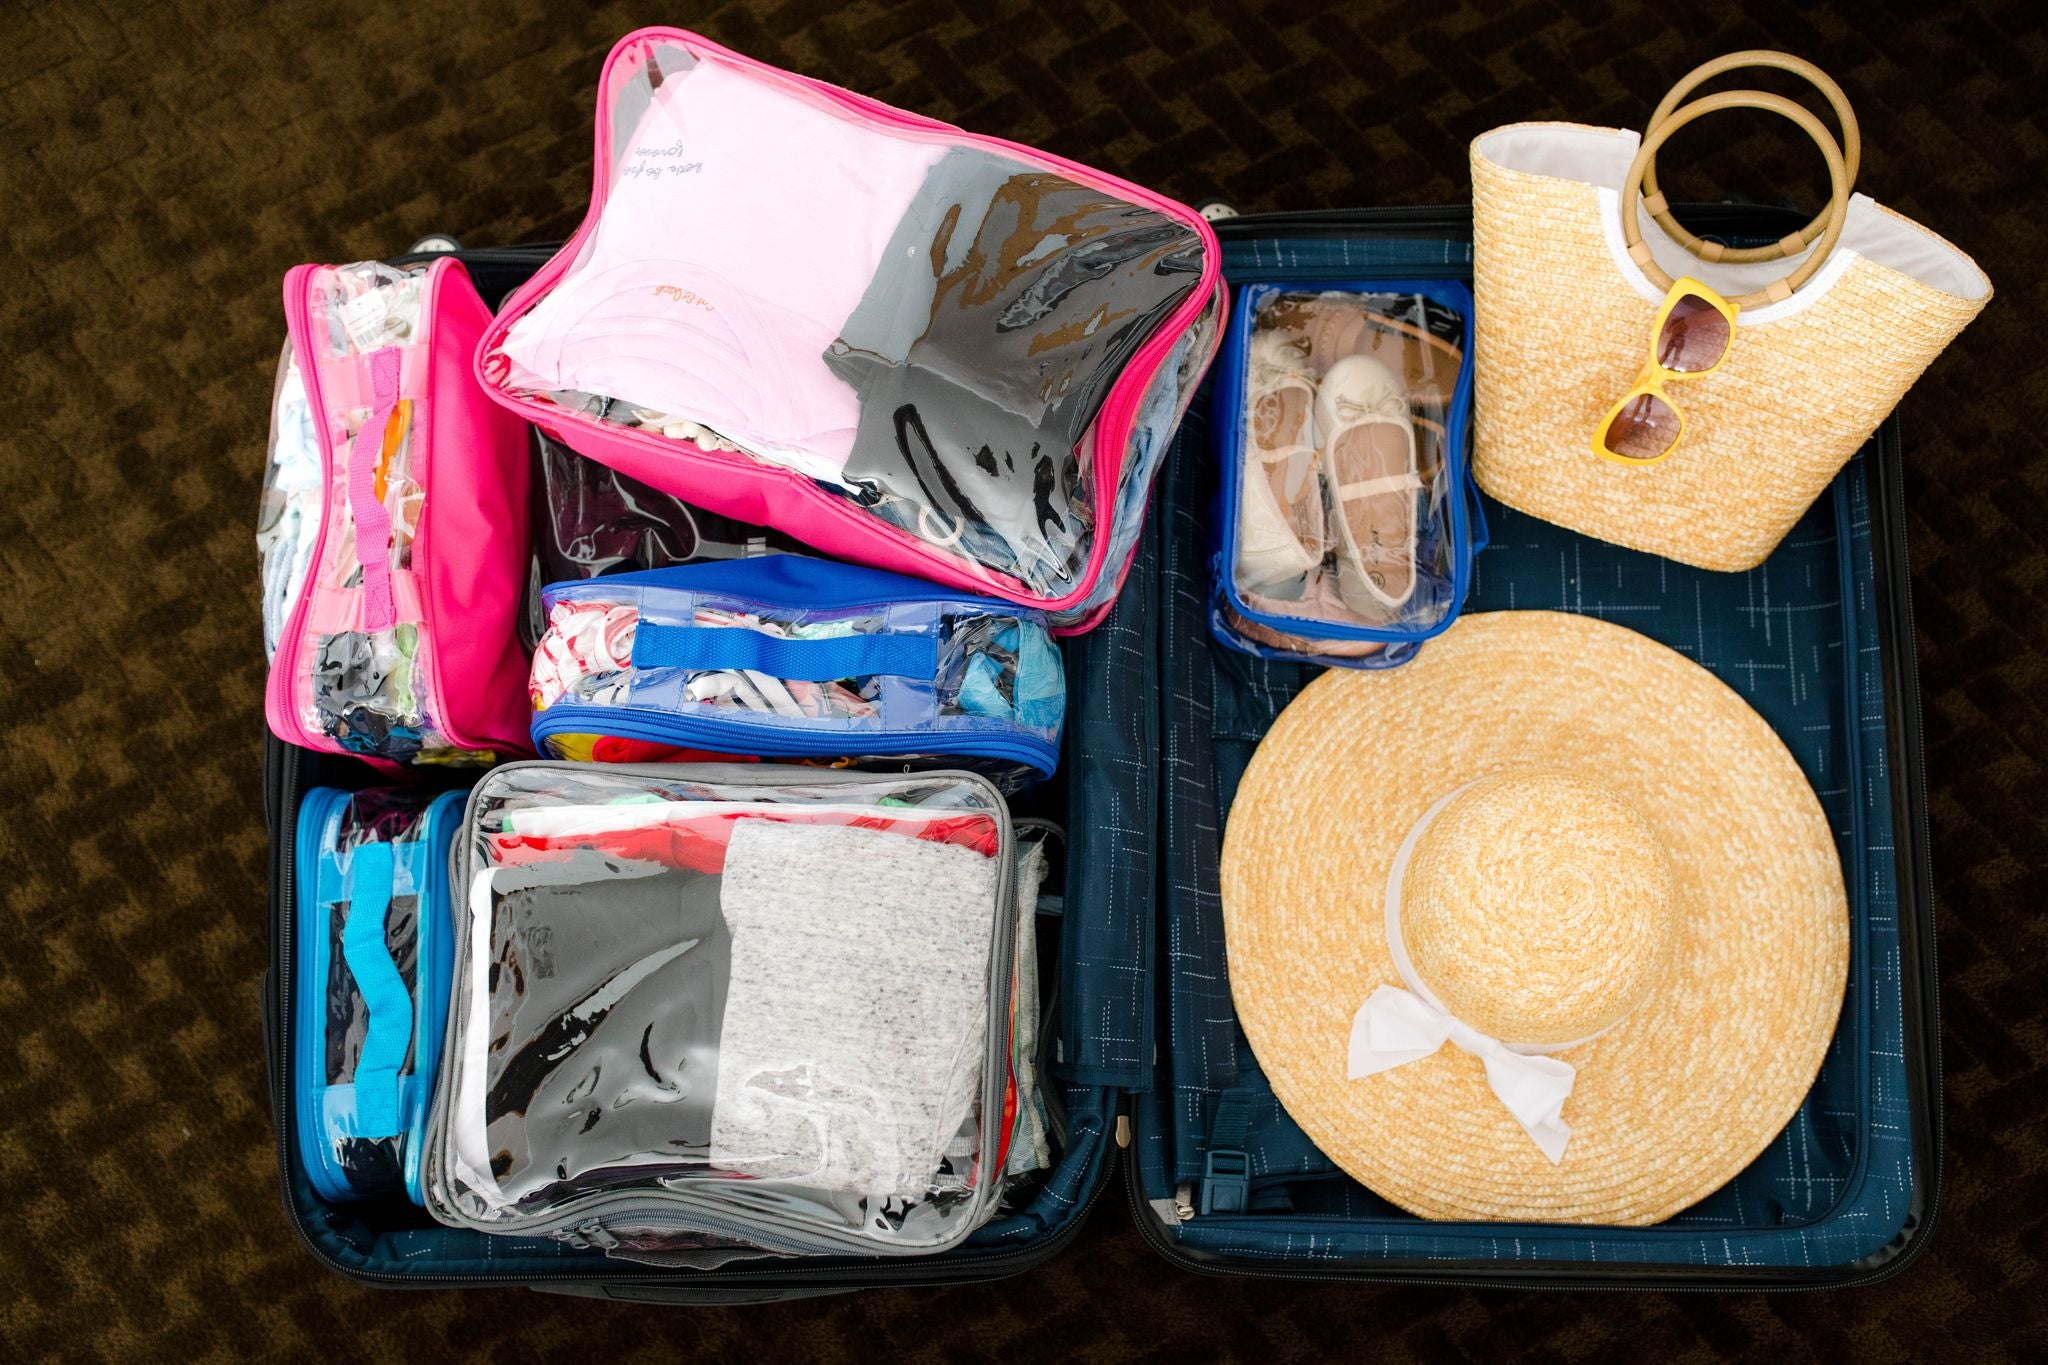 Suitcase organized with clear packing cubes